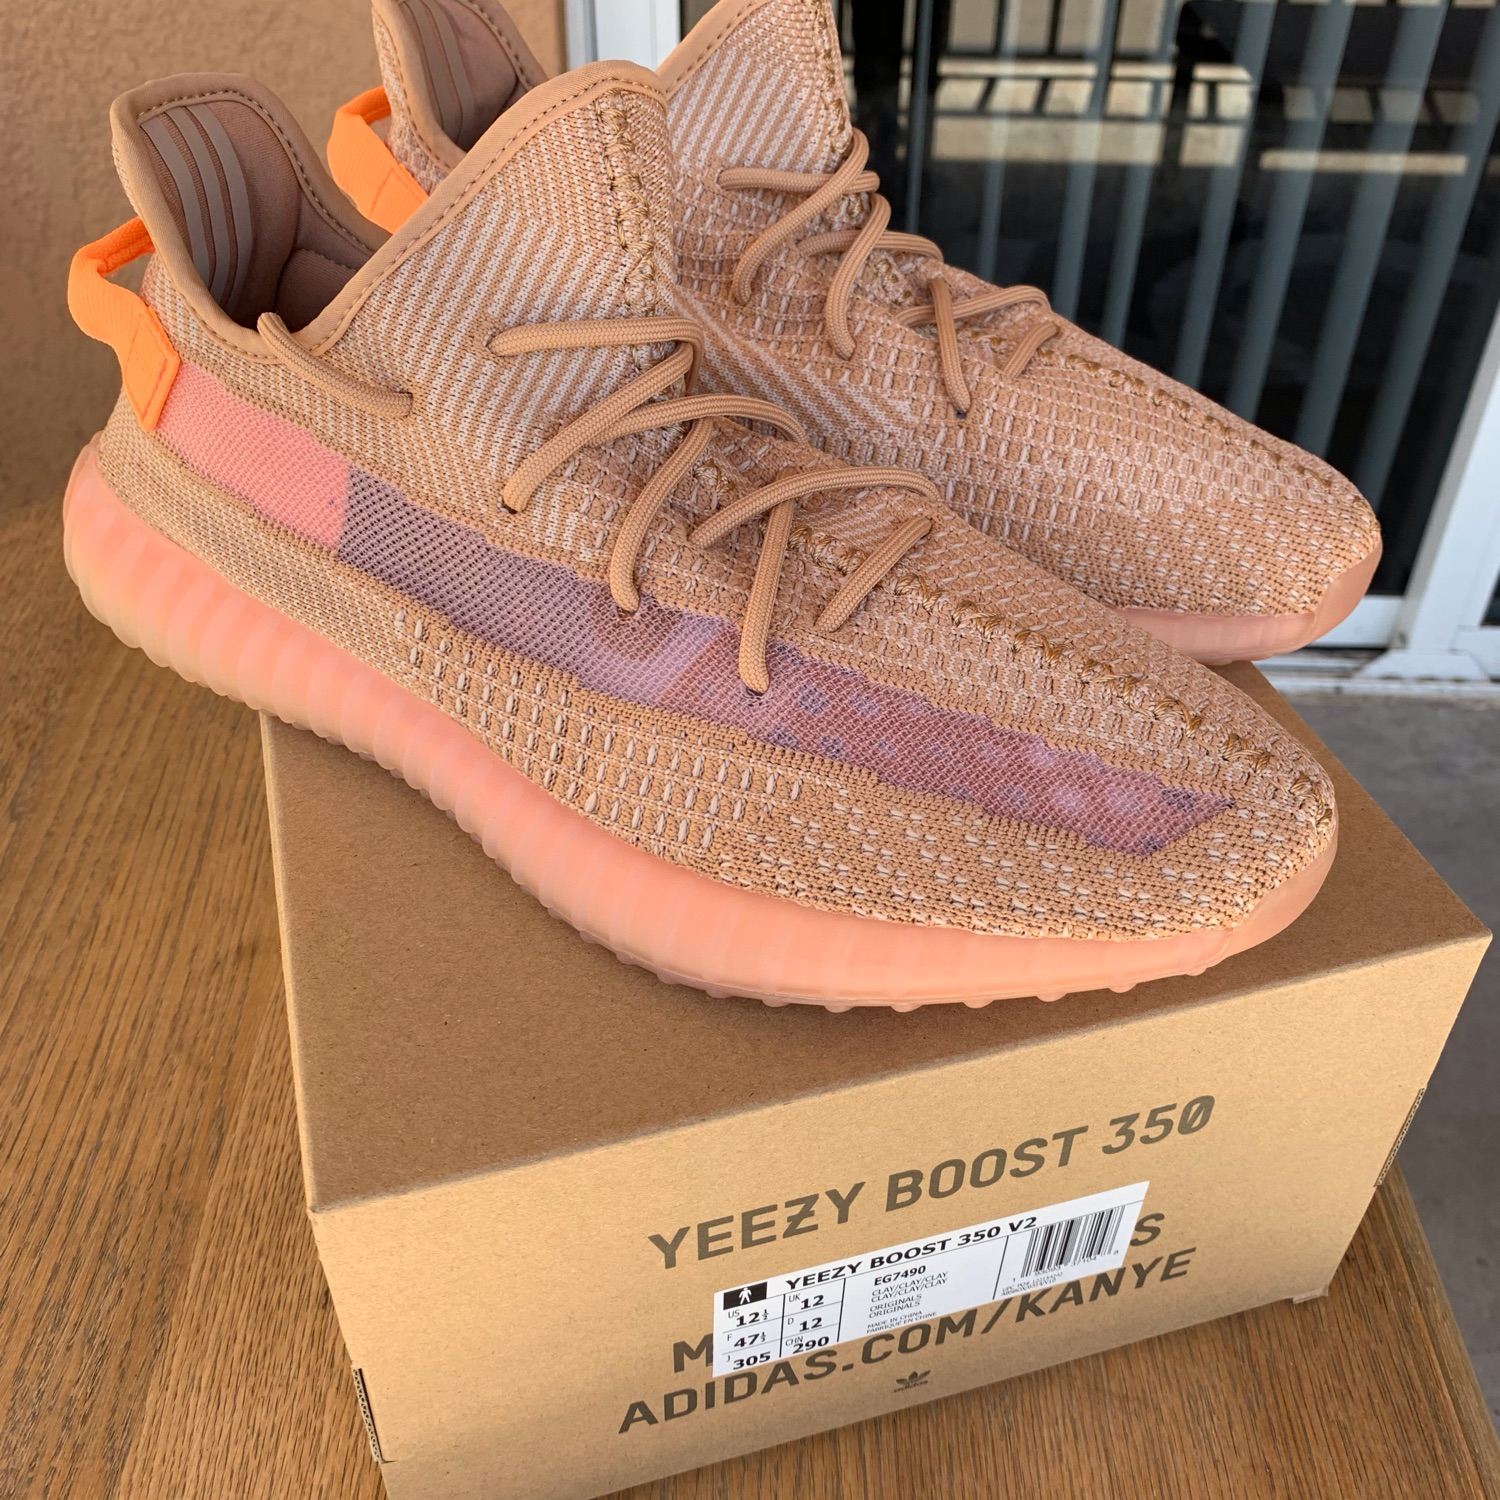 promo code 8917a 51630 Yeezy Boost 350 V3 Clay Size 12.5 Adidas Eg7490